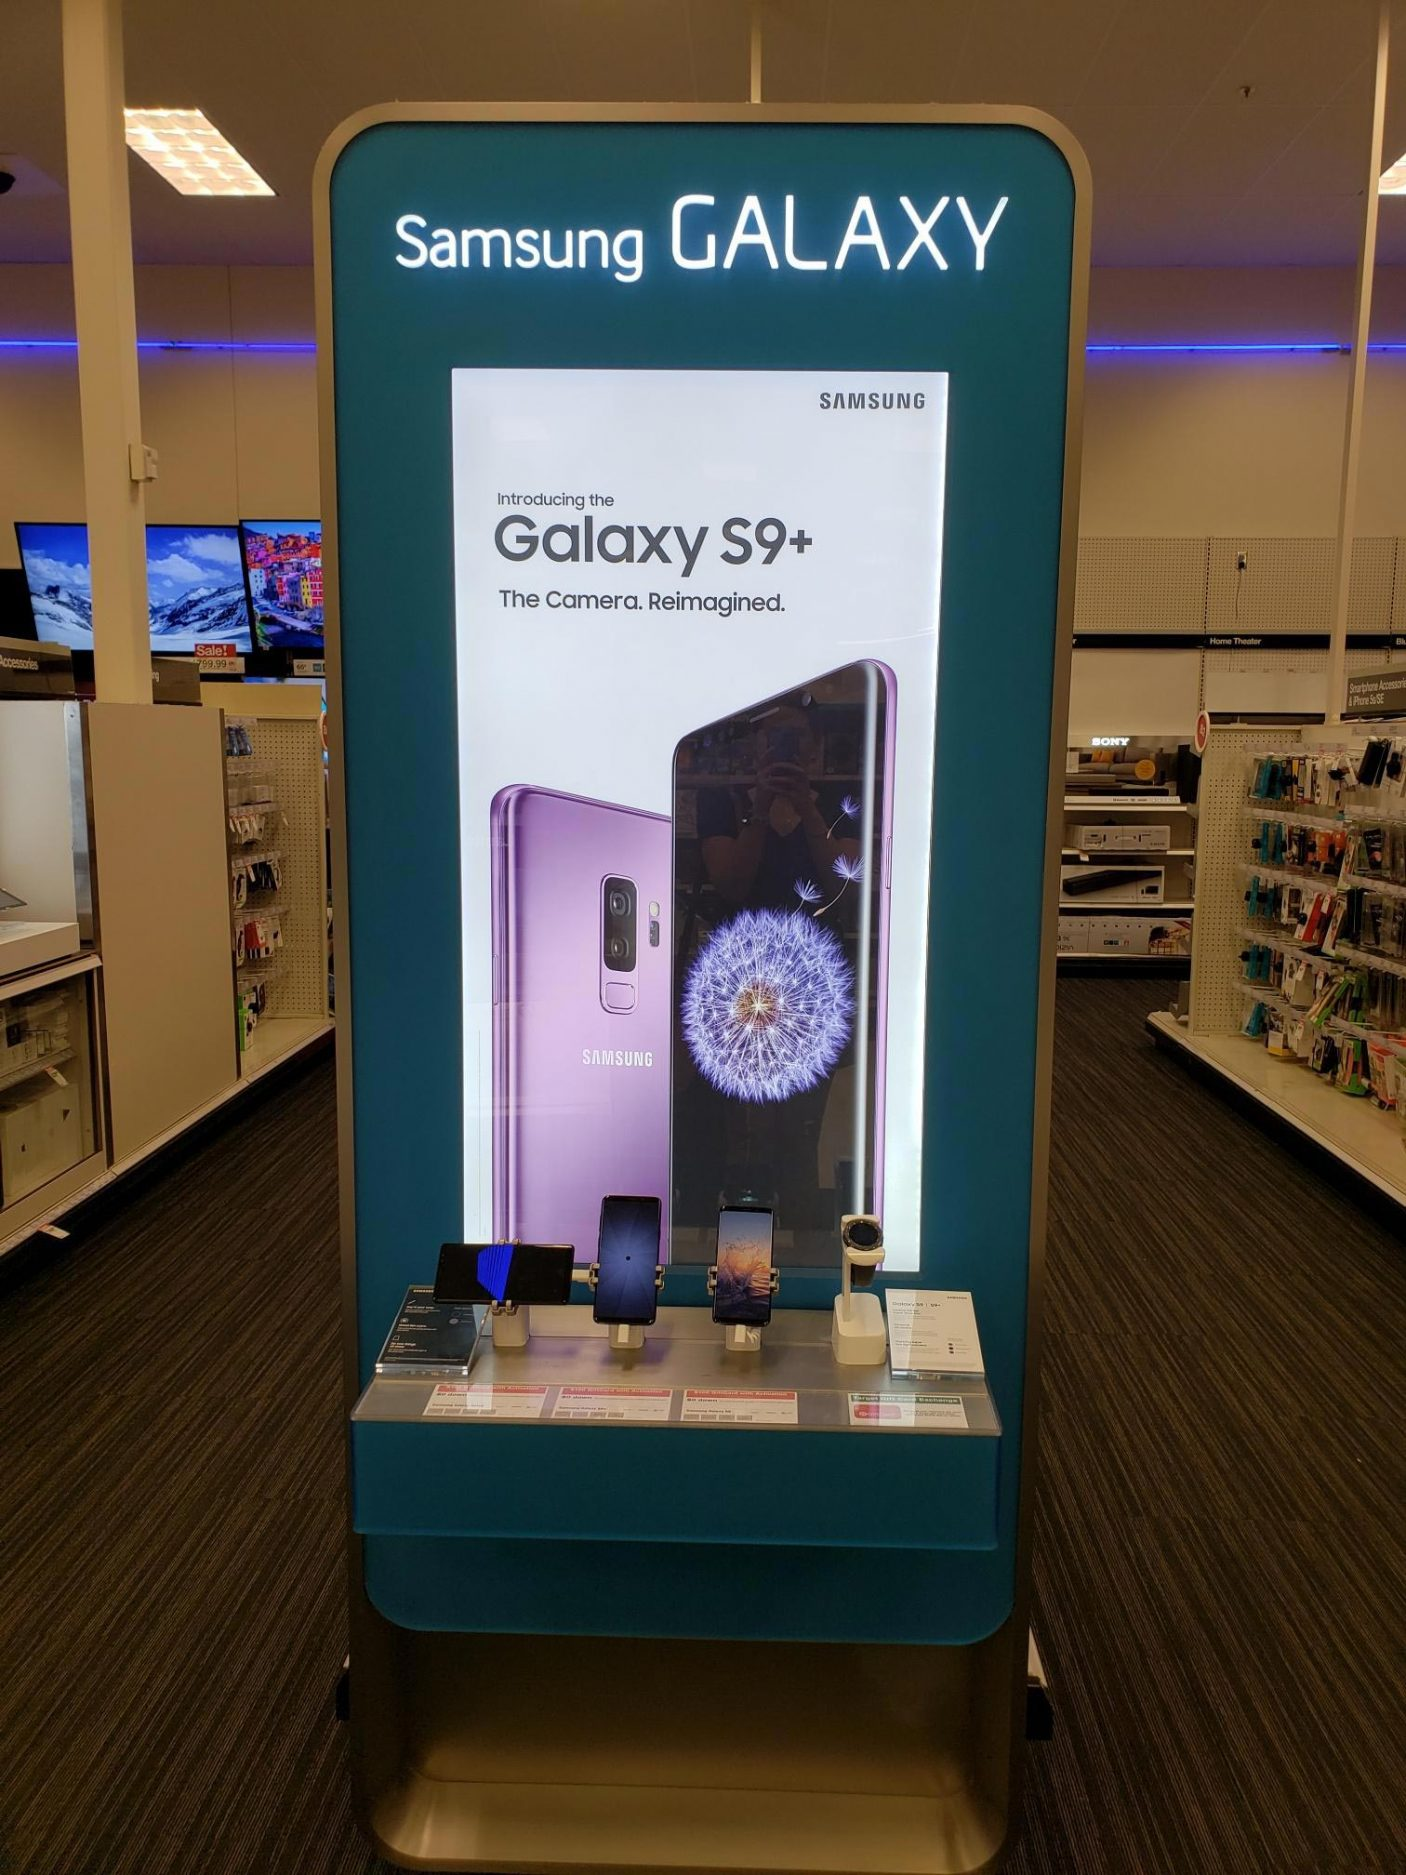 Target In Store Photo GS9+.jpg